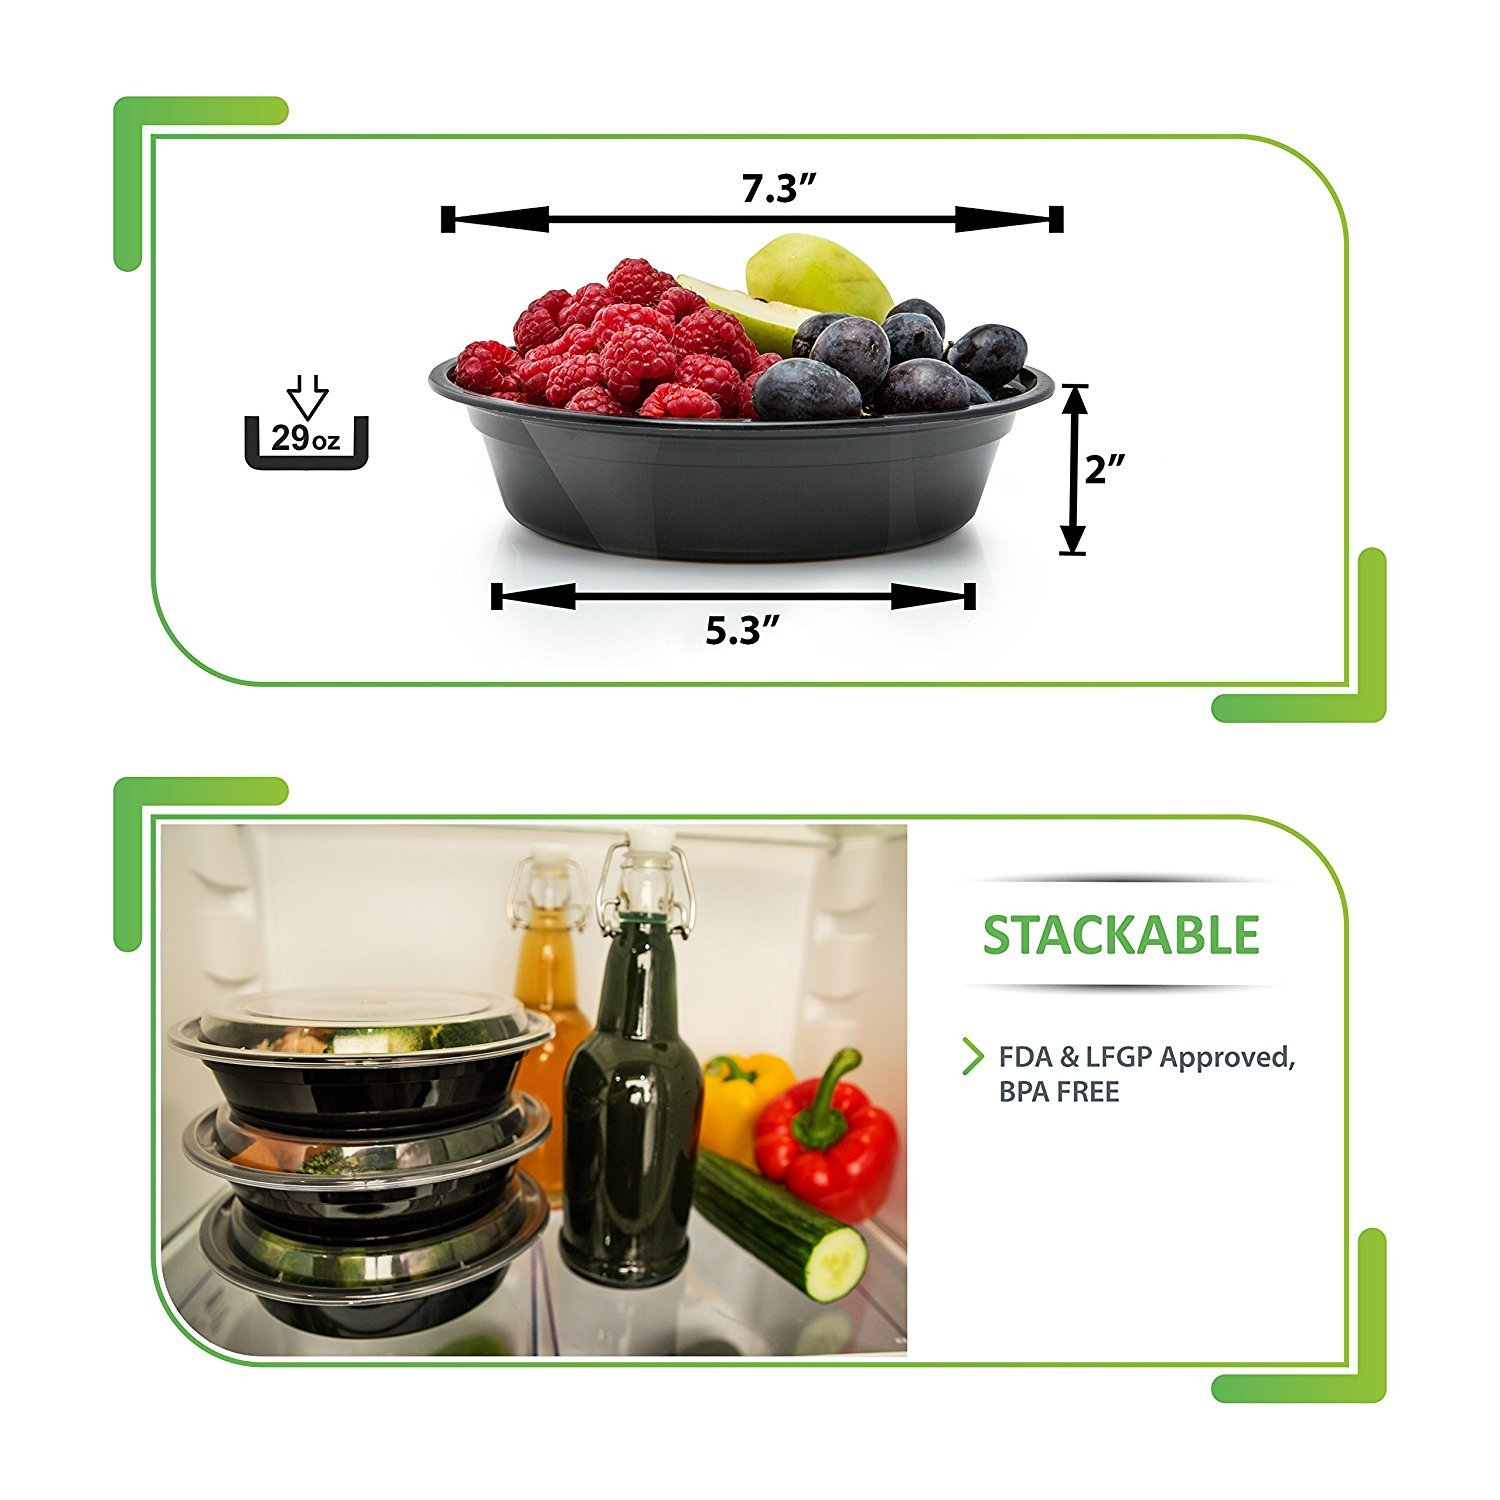 30 Meal Prep Containers Reusable - Disposable Food Containers Meal Prep Bowls - Plastic Containers with lids - Plastic Food Storage Containers with Lids - Lunch Containers for adults to go Containers by Prep Naturals (Image #5)